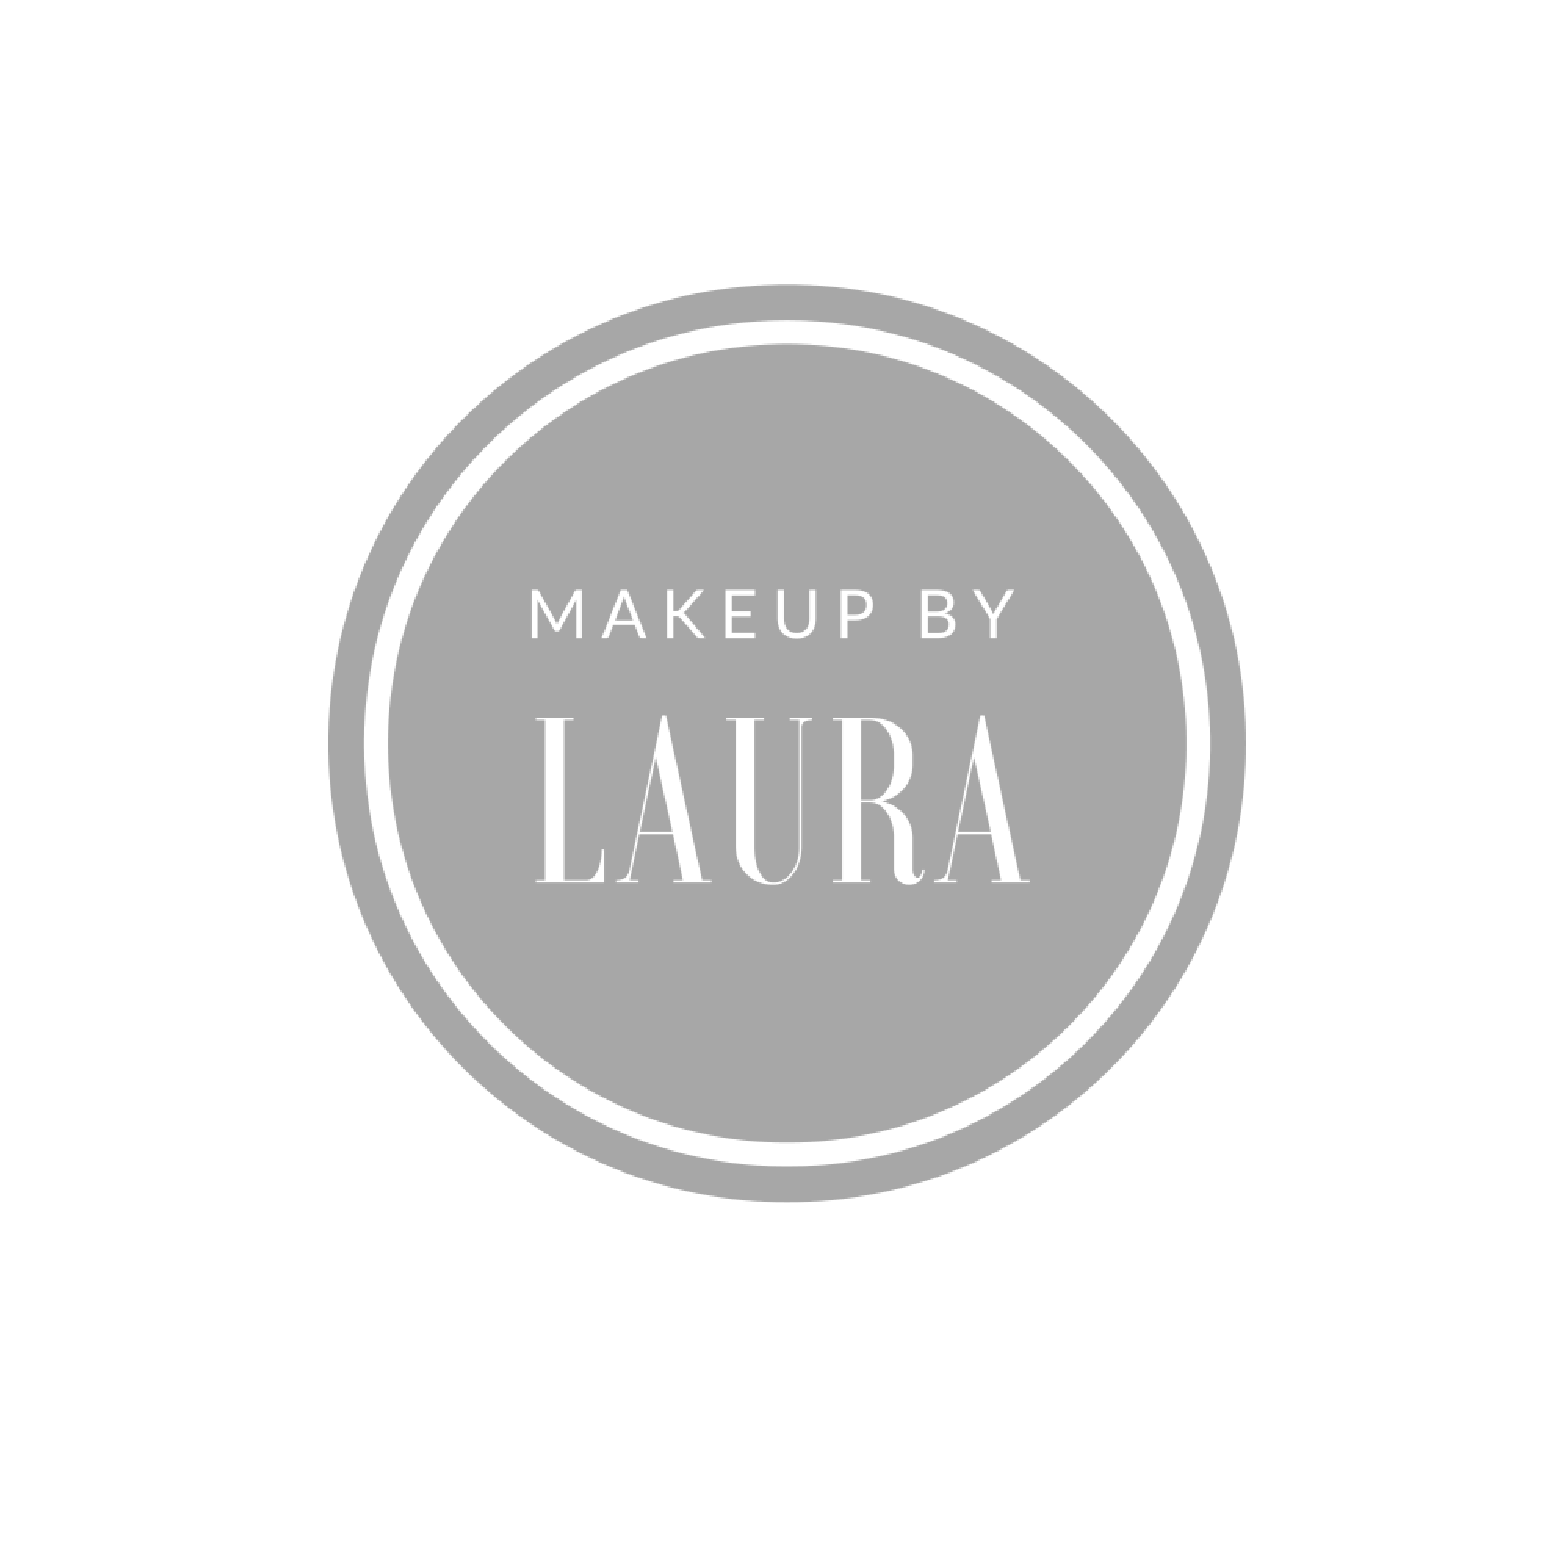 MAKEUp By-8.png